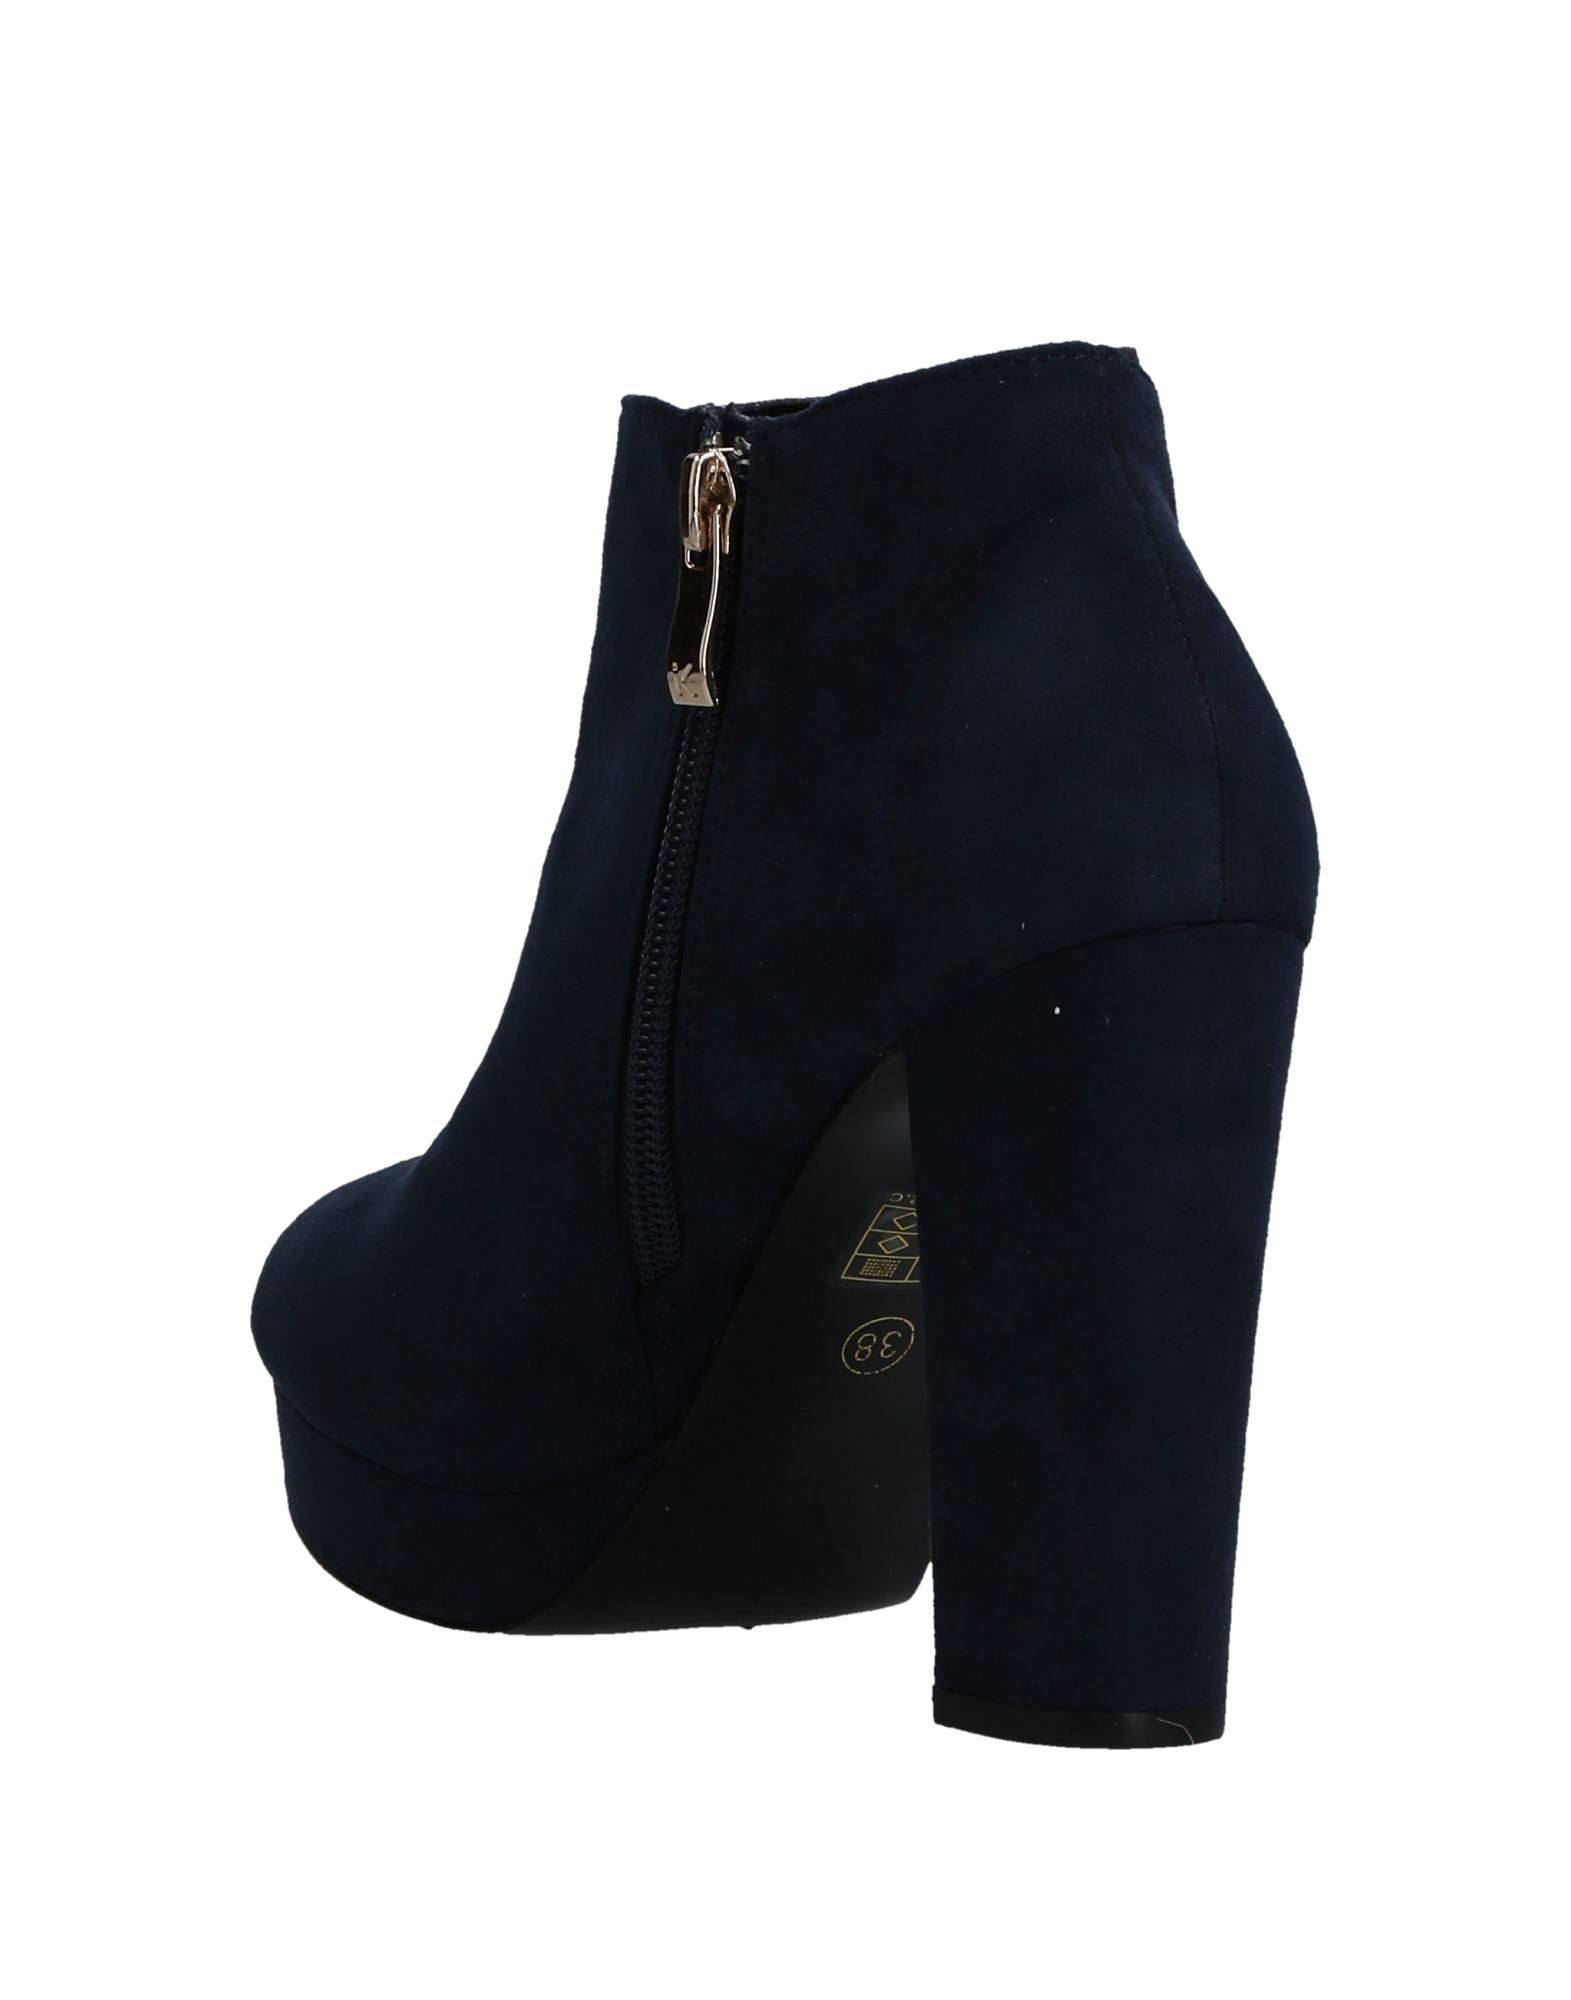 Ikaros Ankle Boot - Women Ikaros Ankle Boots Boots Boots online on  United Kingdom - 11529253SS 9b84fa